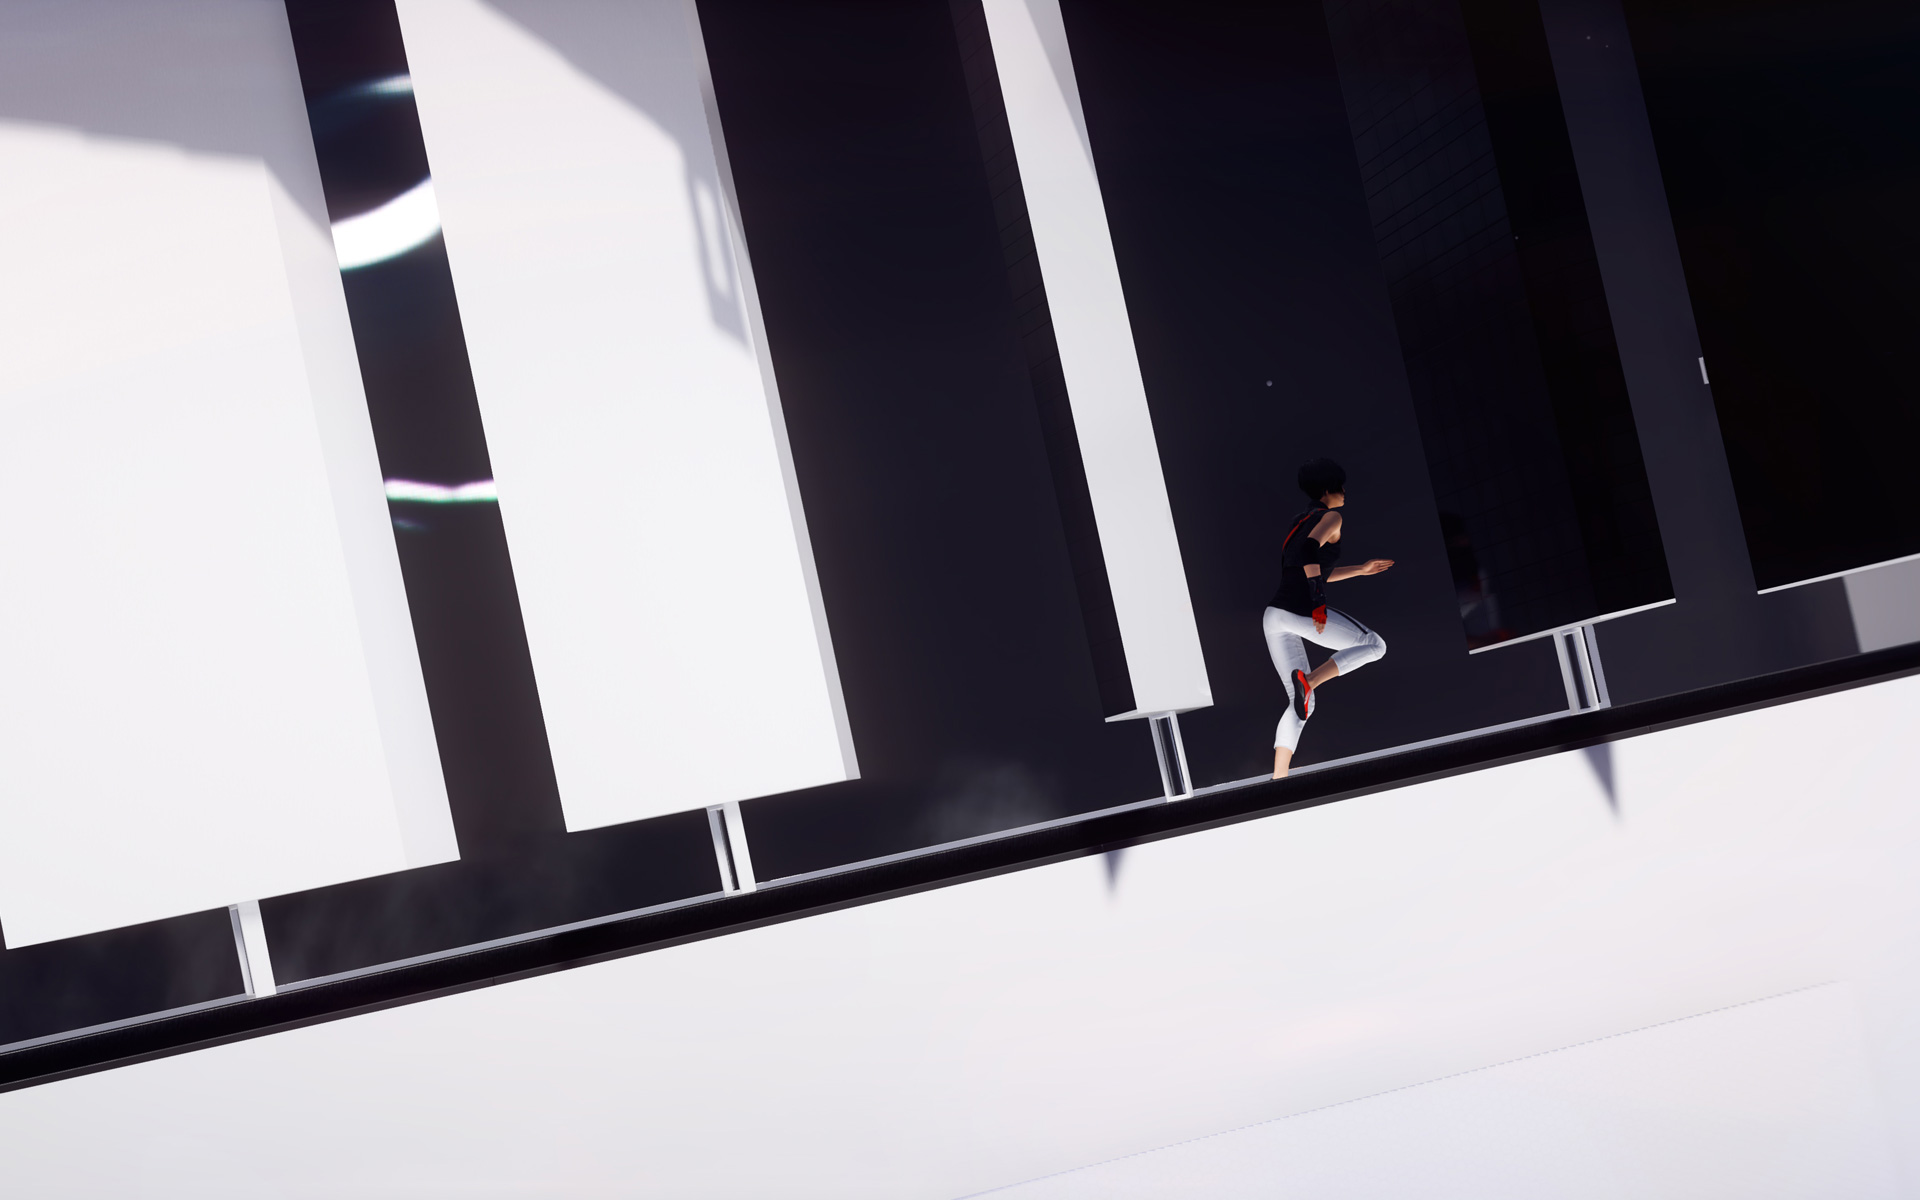 Free Mirror's Edge Catalyst Wallpaper in 1920x1200